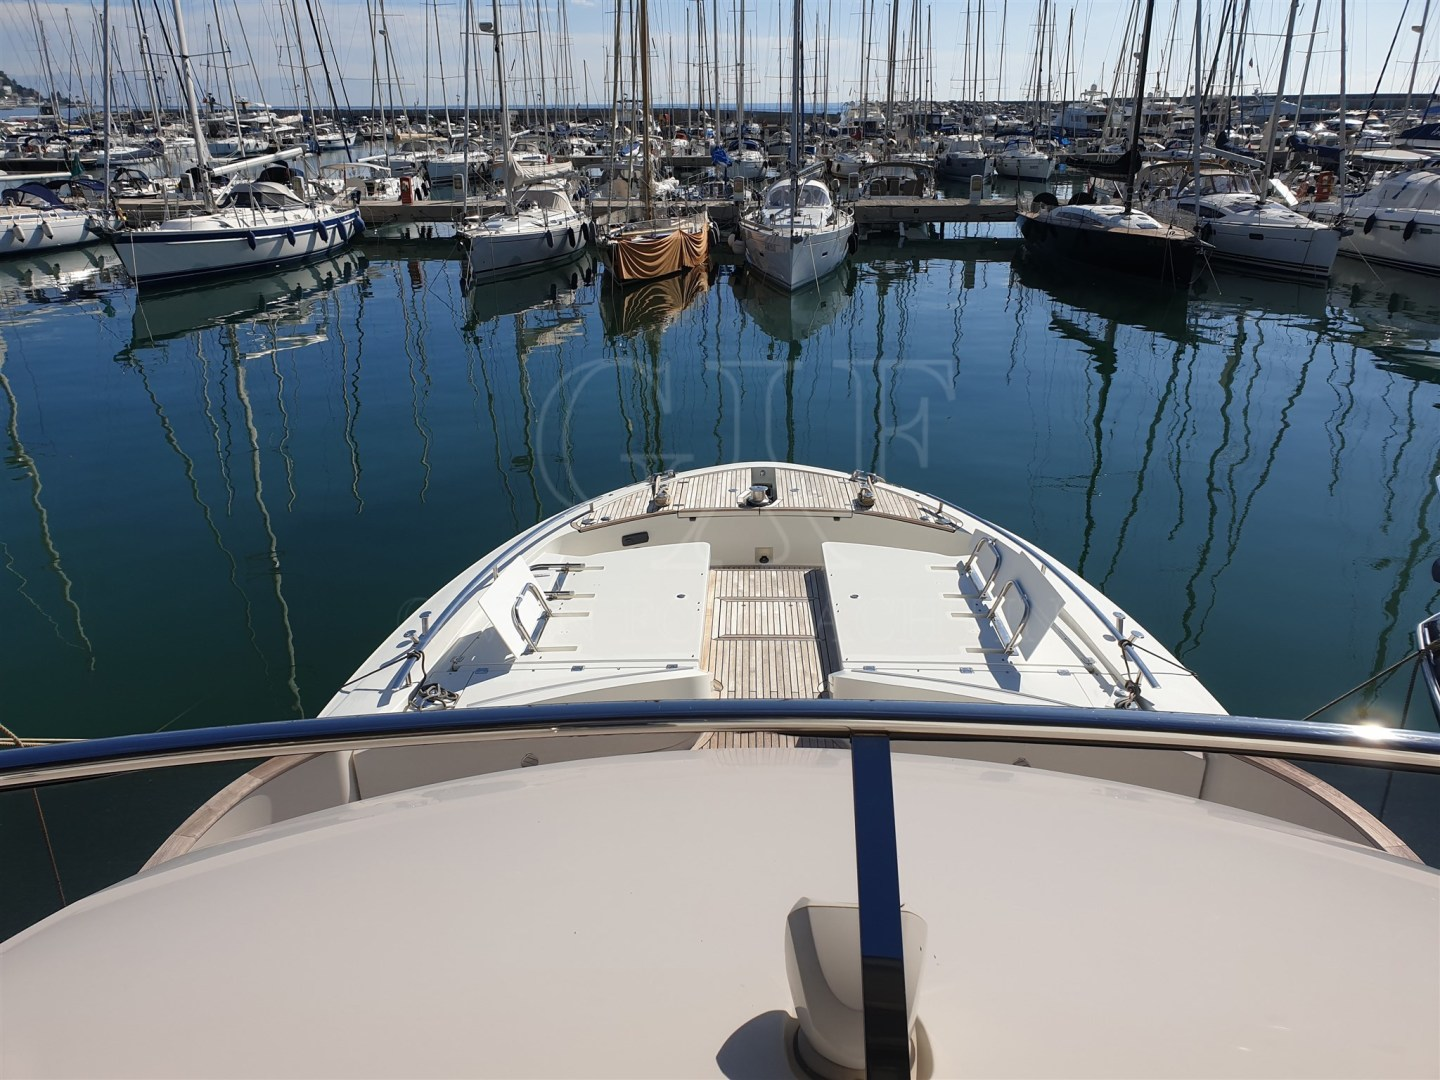 Monte Carlo-MCY 65 2016-EXCALIBUR Varazze-Italy-MCY 65, Fwd Deck View-1309575   Thumbnail